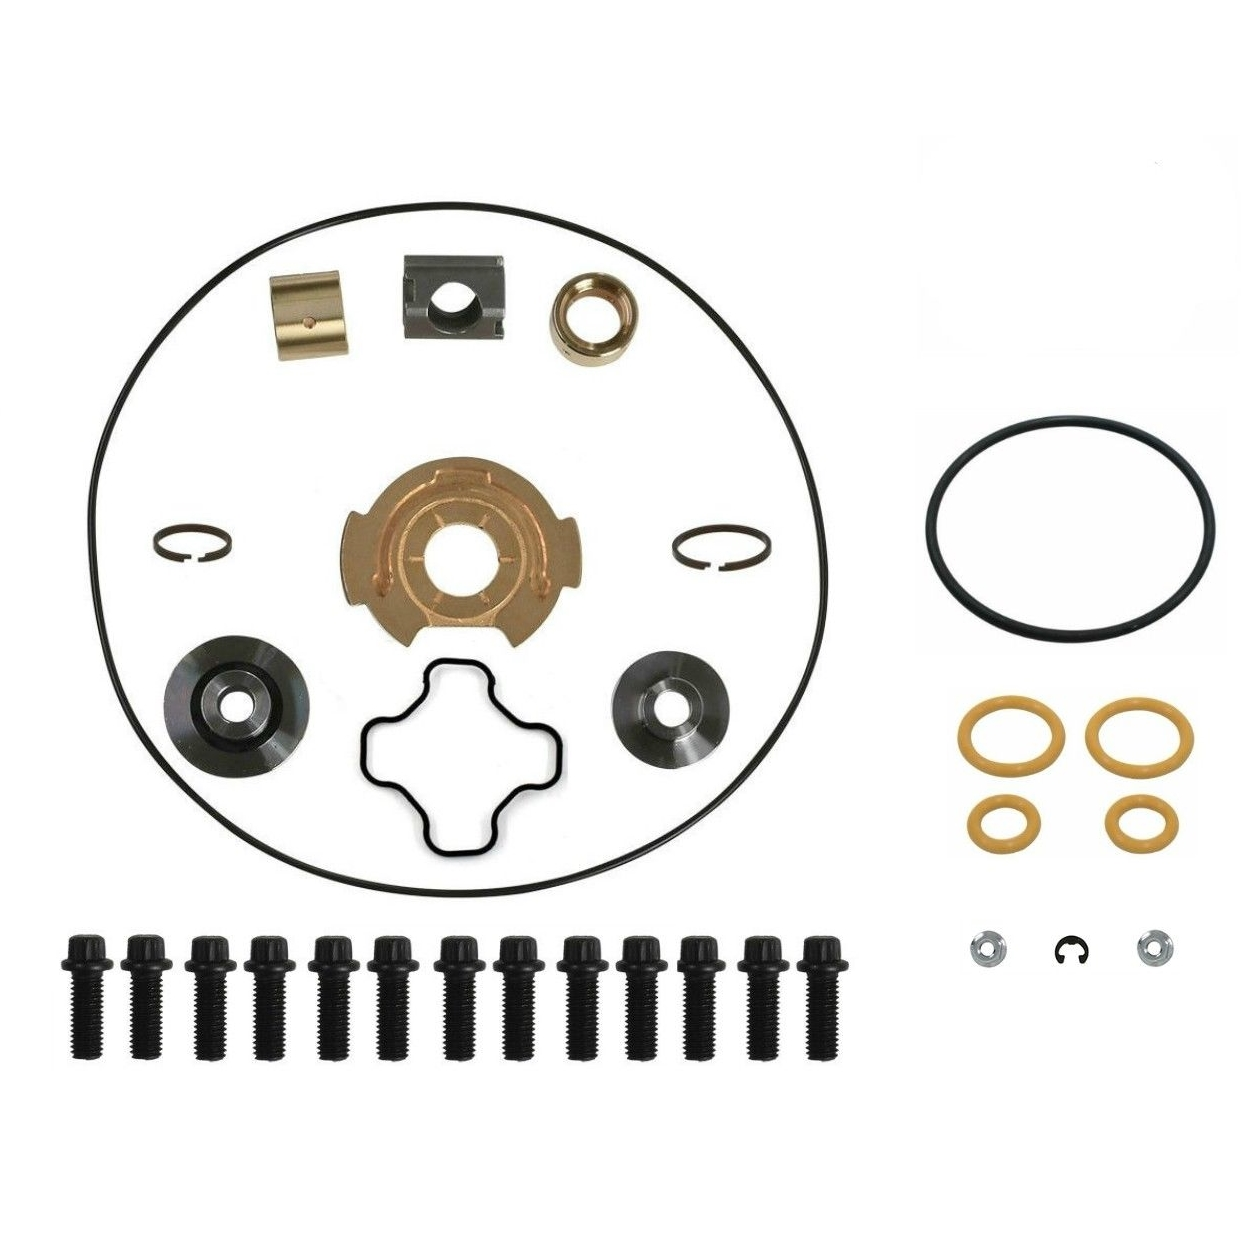 GTP38 Basic Turbo Rebuild Kit For 99-03 7.3L Ford Powerstroke Diesel